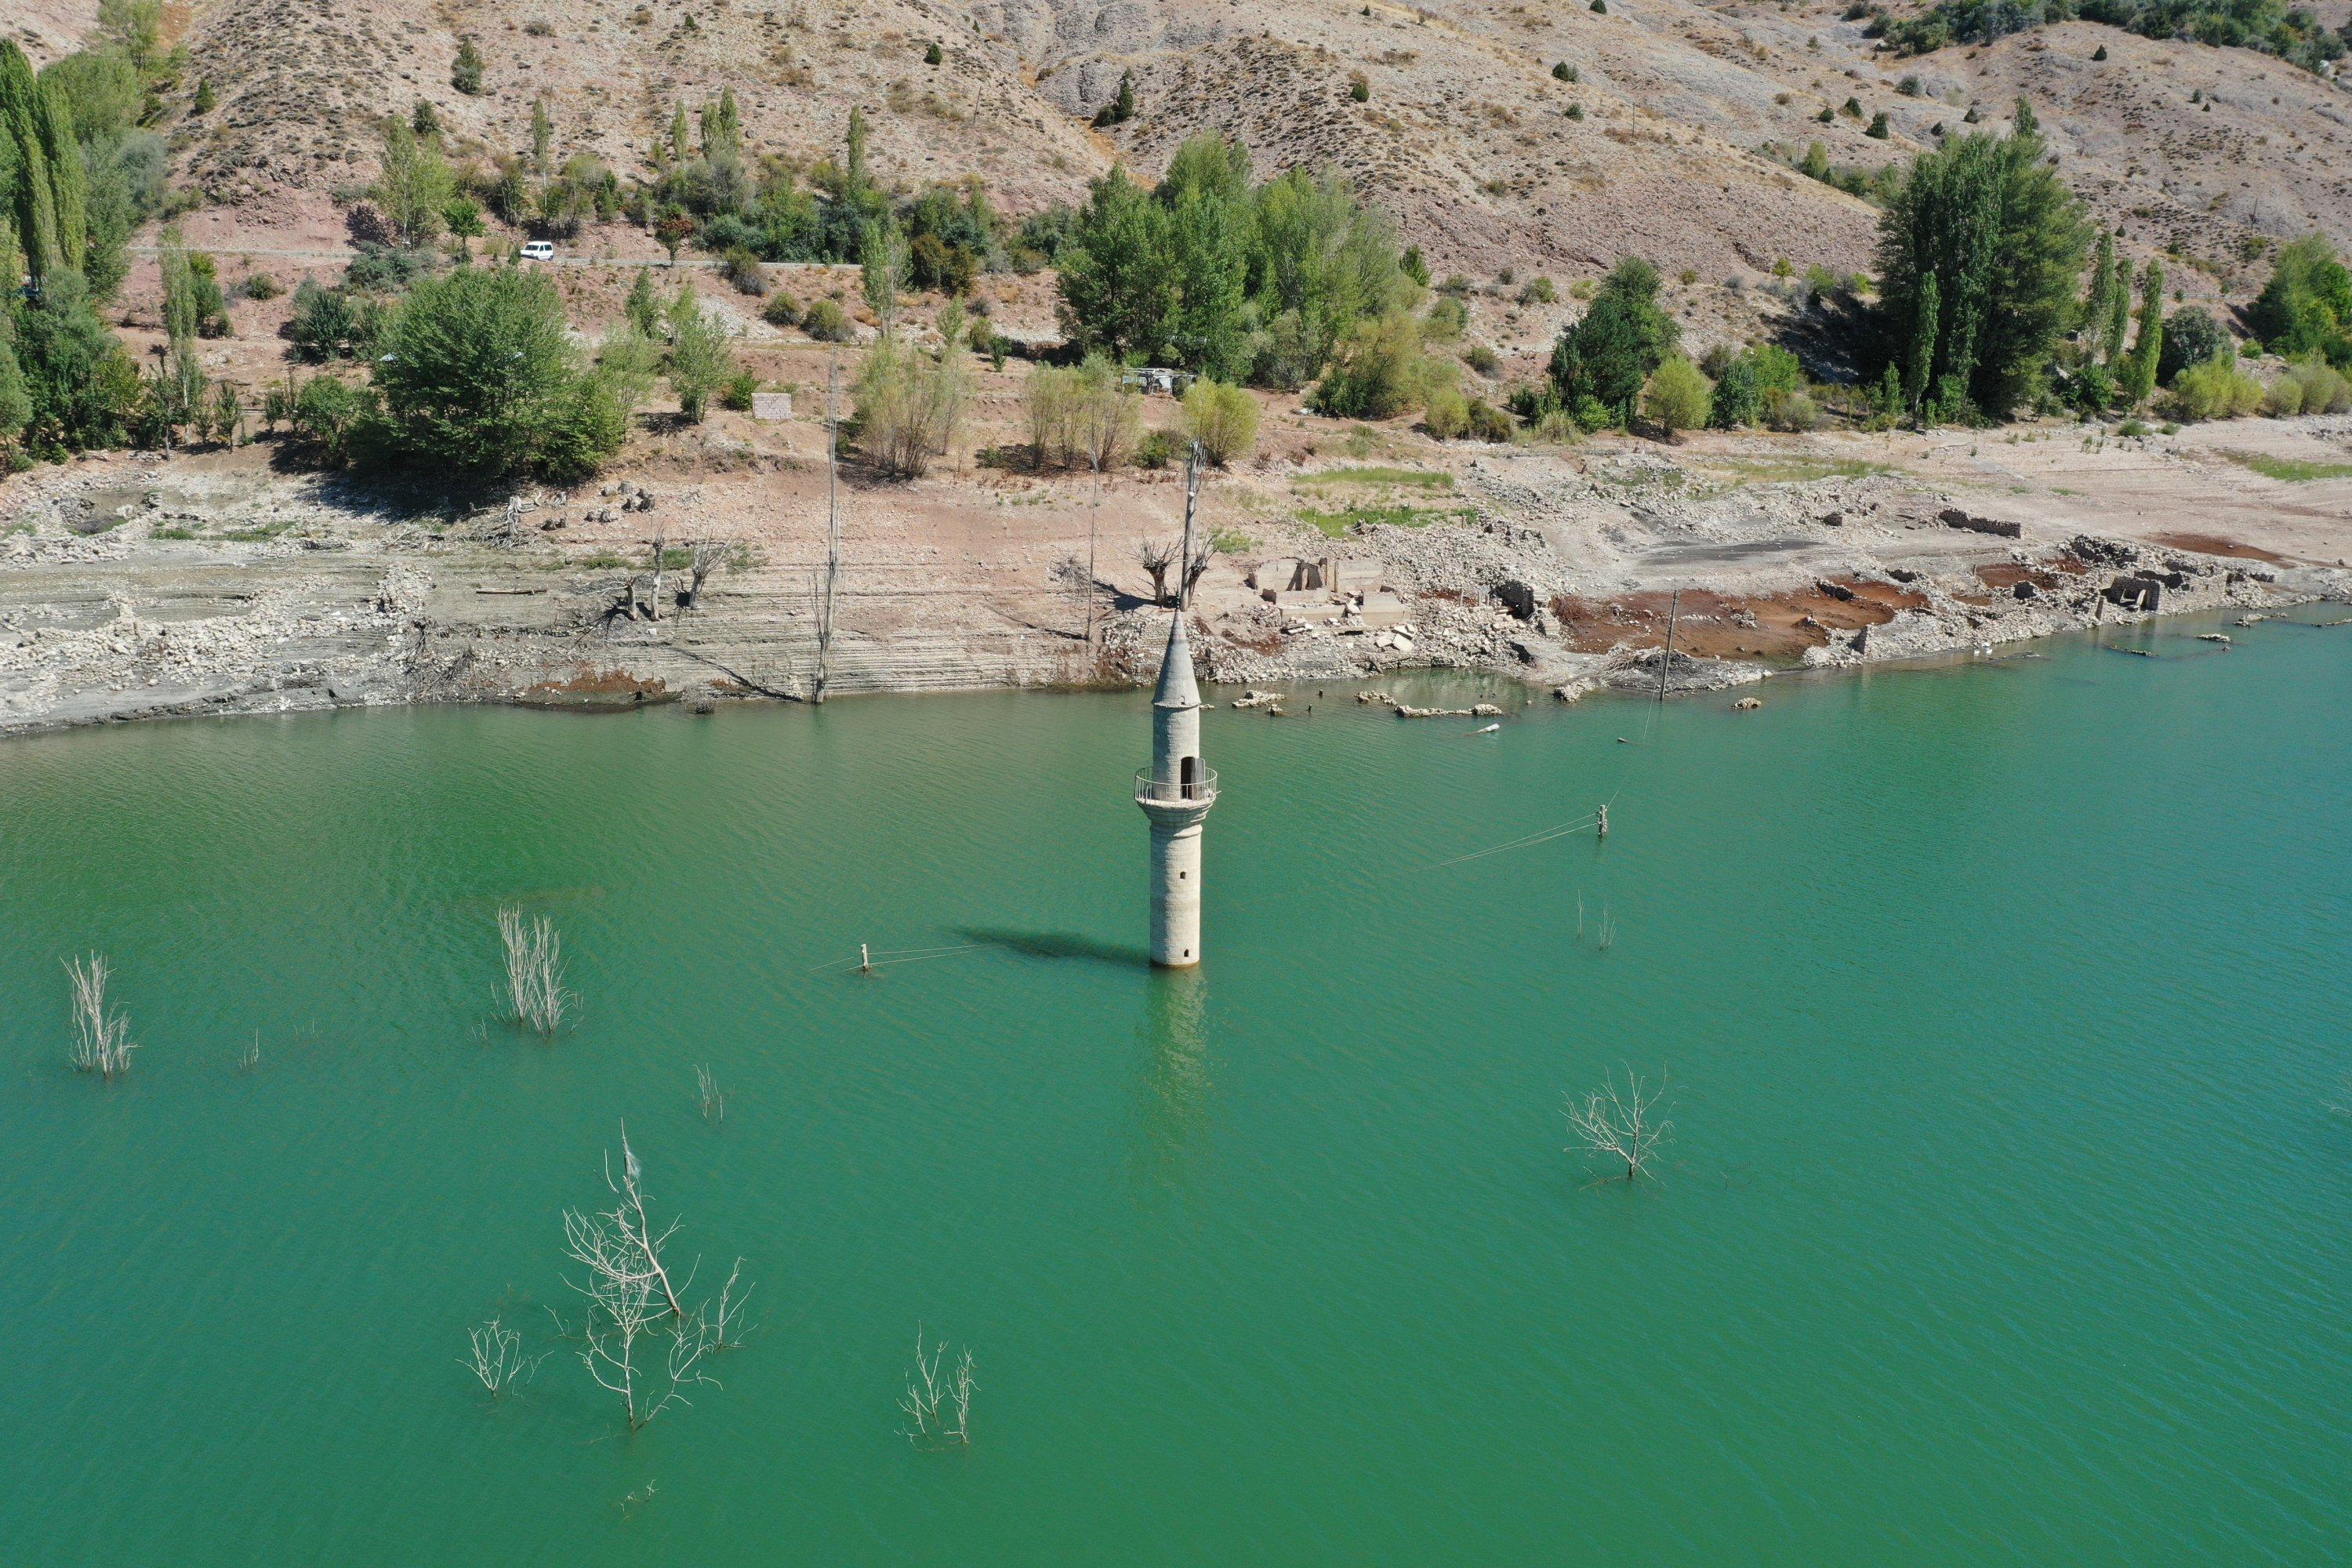 A minaret once buried underwater emerged in Pusat village amid a drought, in Sivas, central Turkey, Sept. 12, 2021. (AA PHOTO)